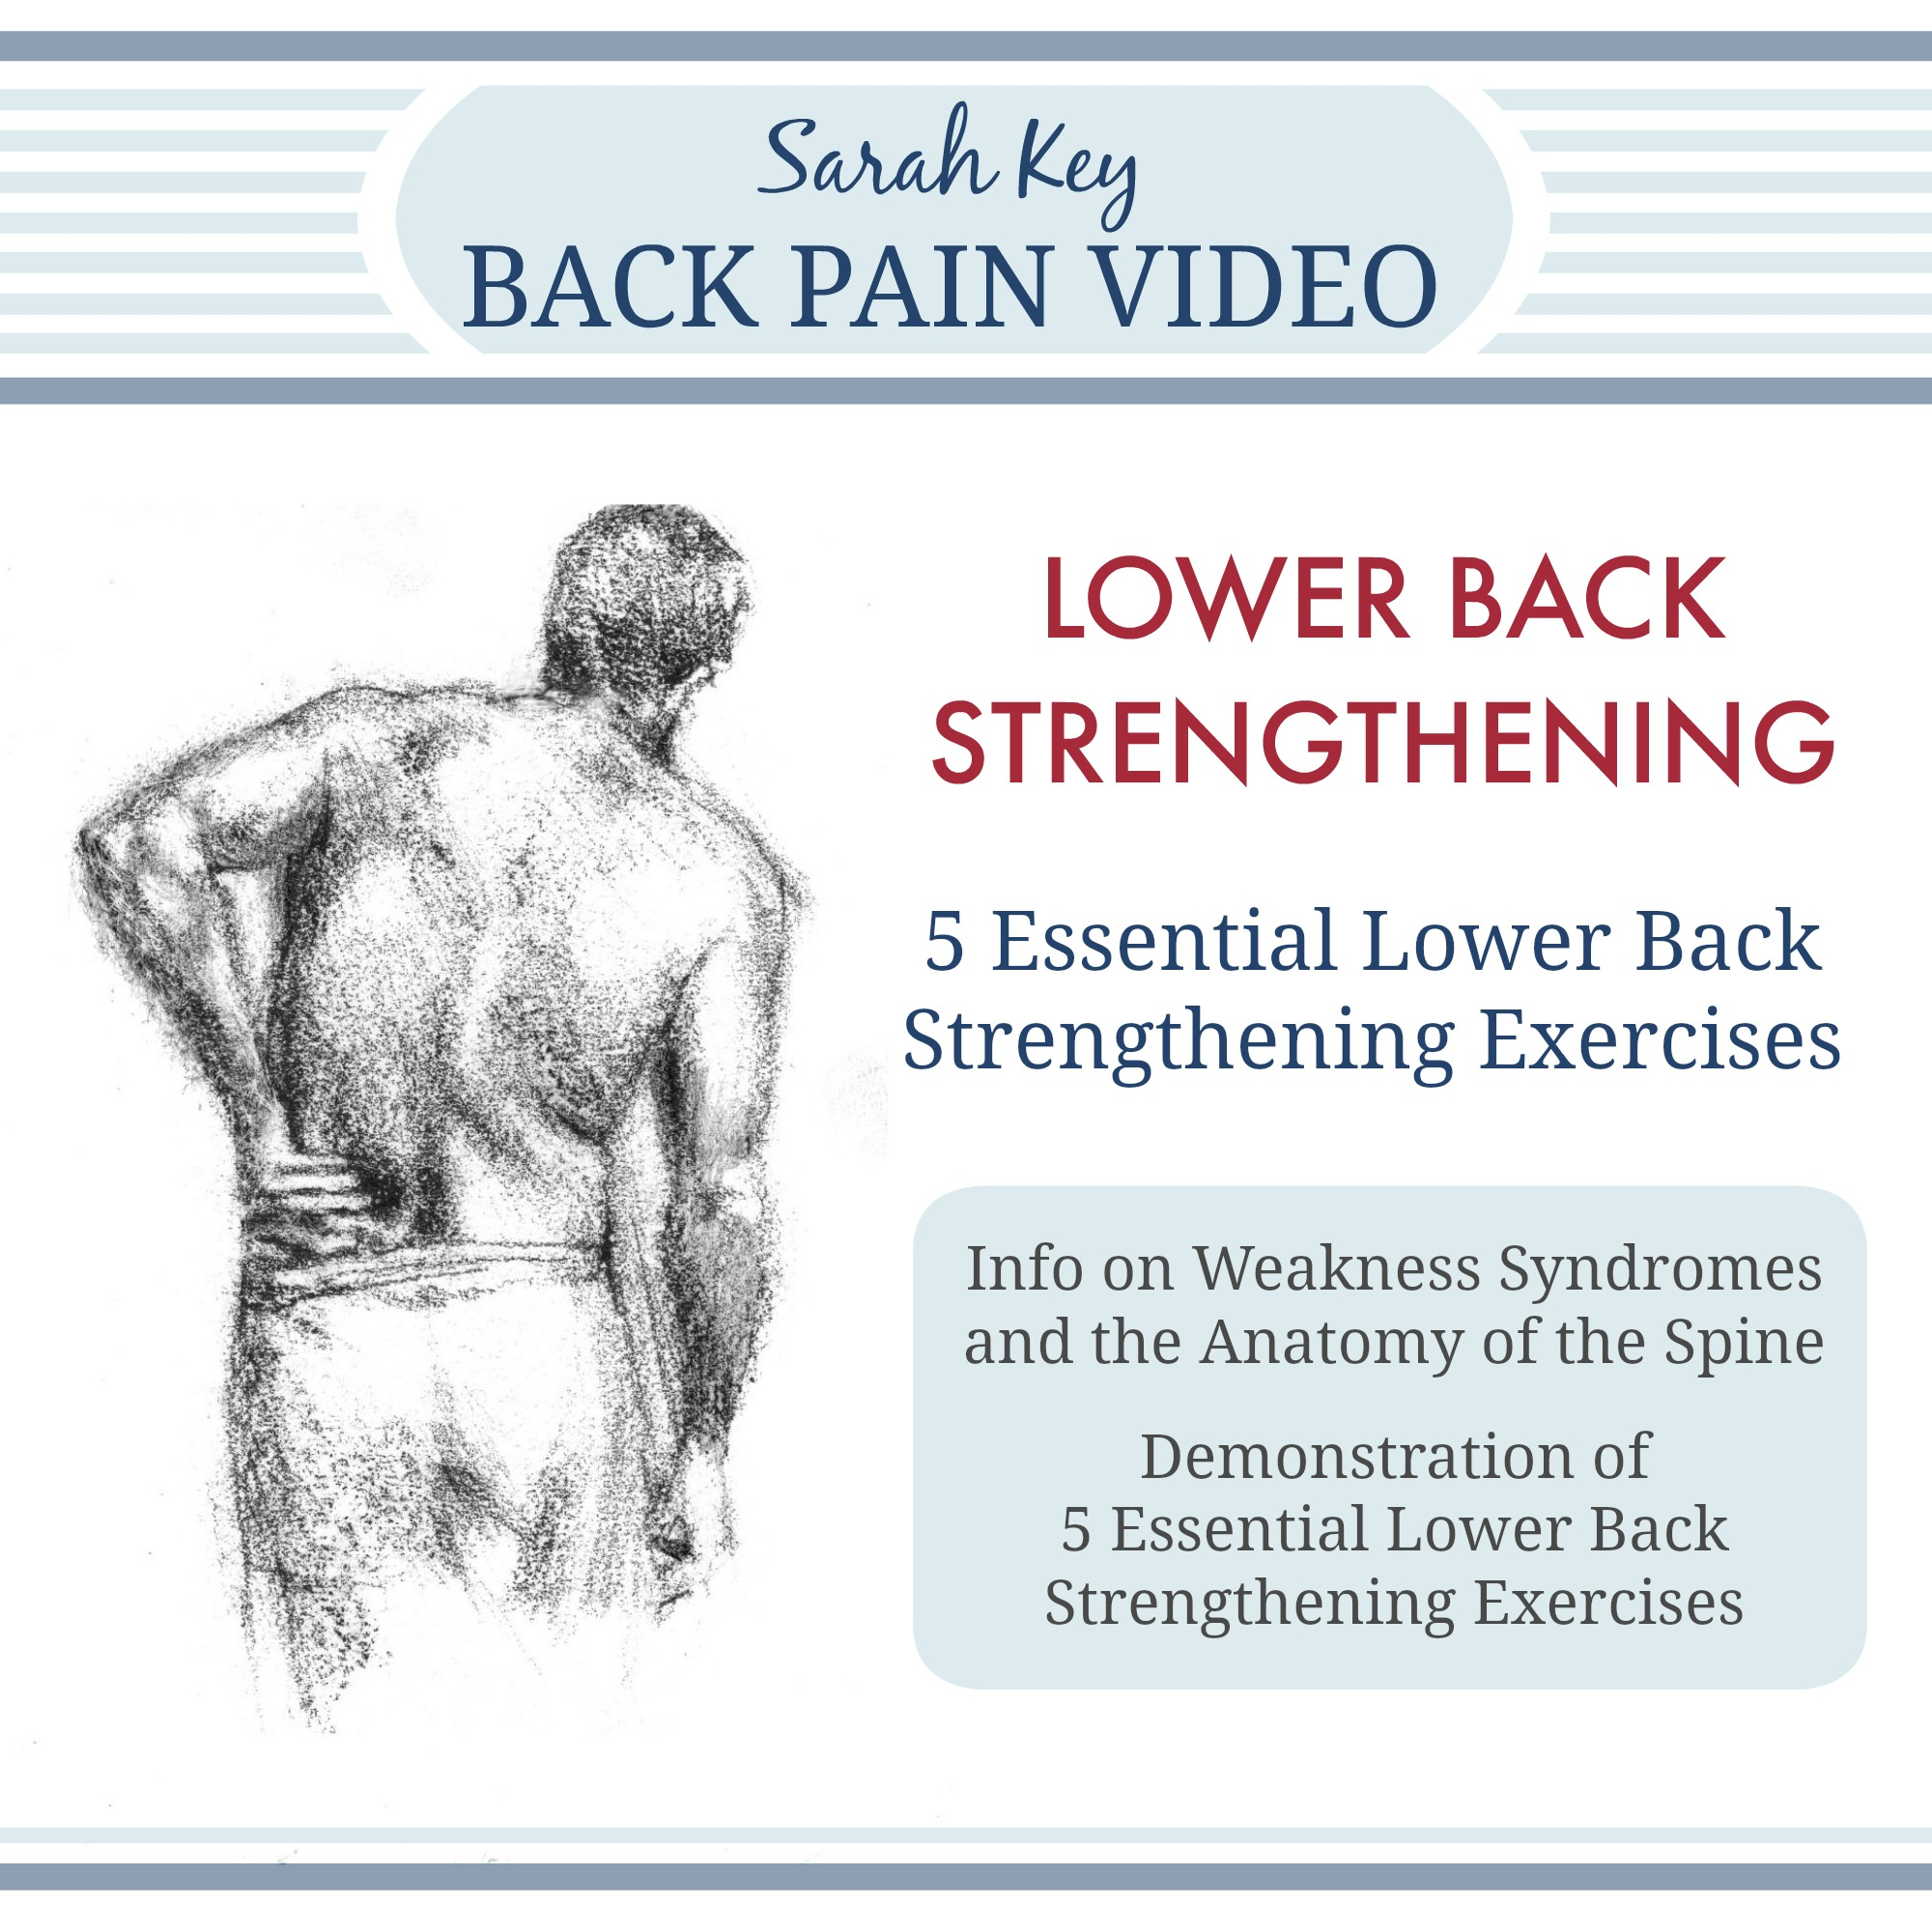 Back Pain Videos For Relief And Repair From Sarah Key